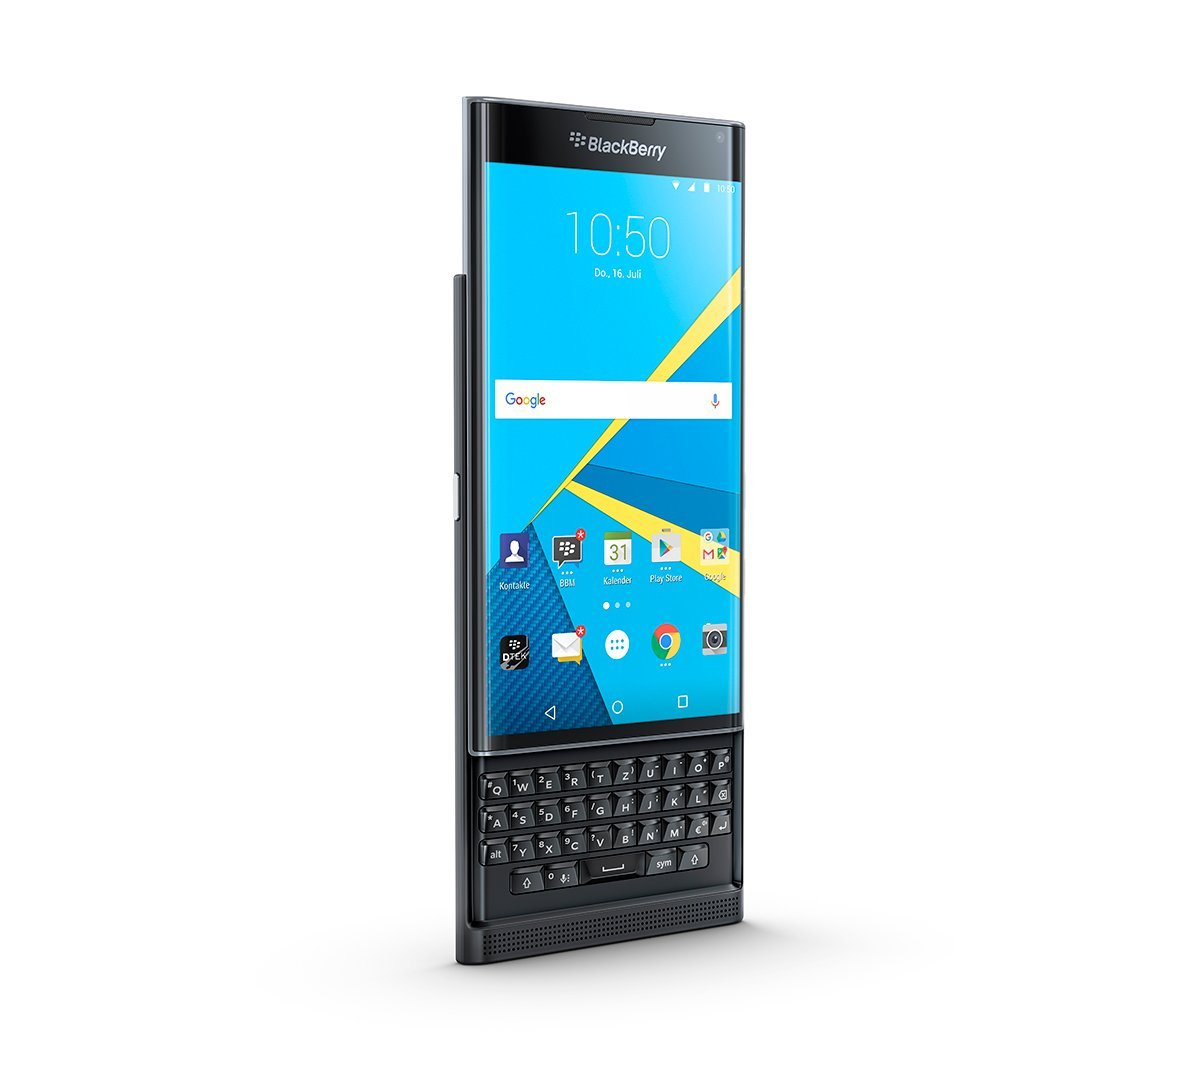 BlackBerry-Priv-Shop-10